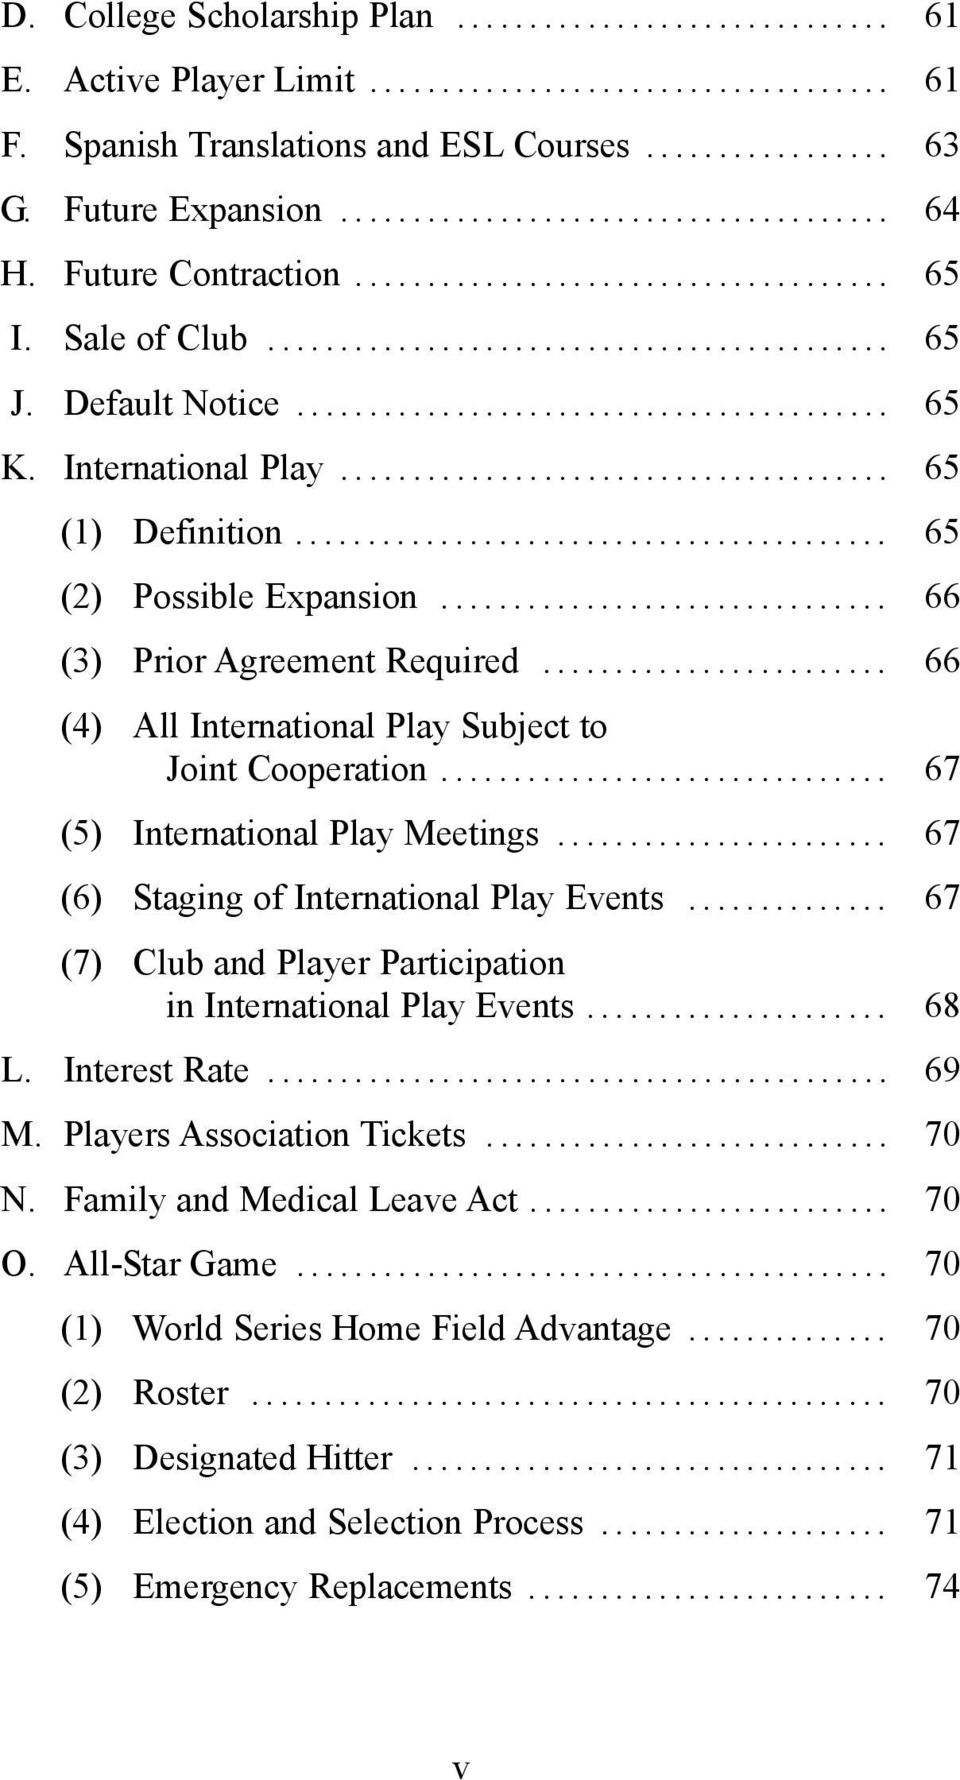 .. 67 (5) International Play Meetings... 67 (6) Staging of International Play Events... 67 (7) Club and Player Participation in International Play Events... 68 L. Interest Rate... 69 M.